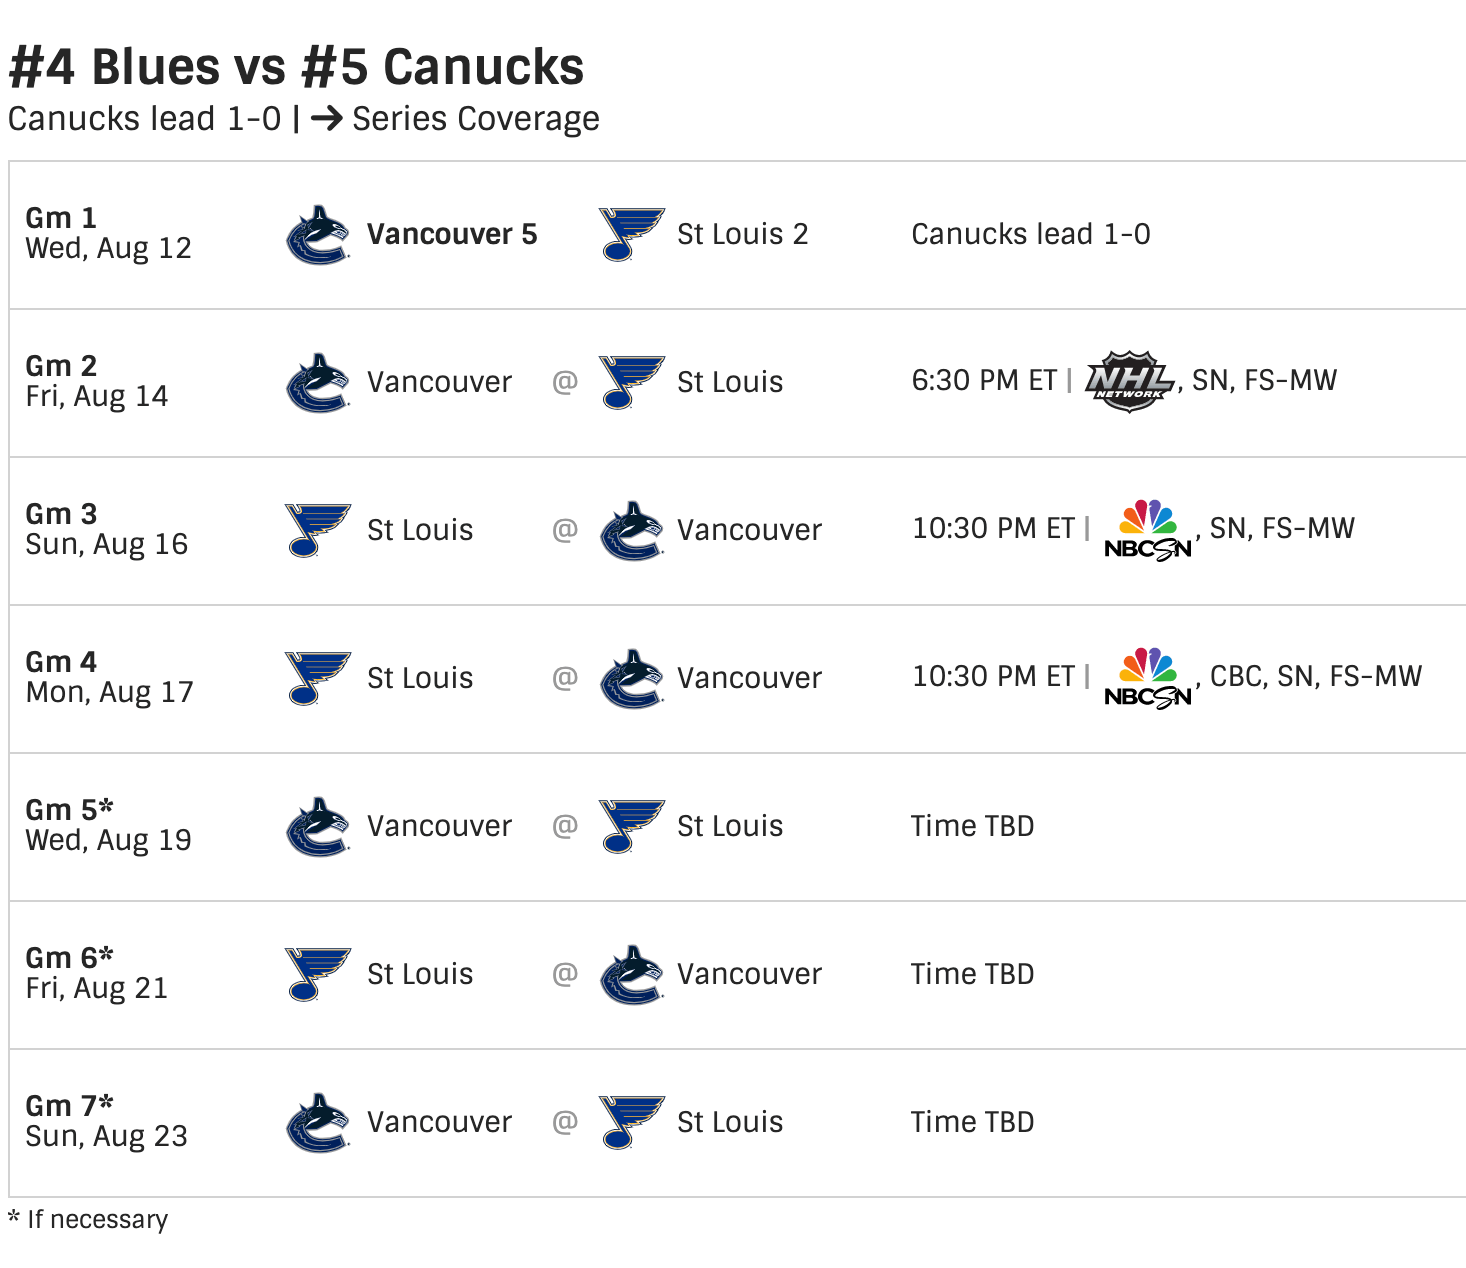 Blues in the first round